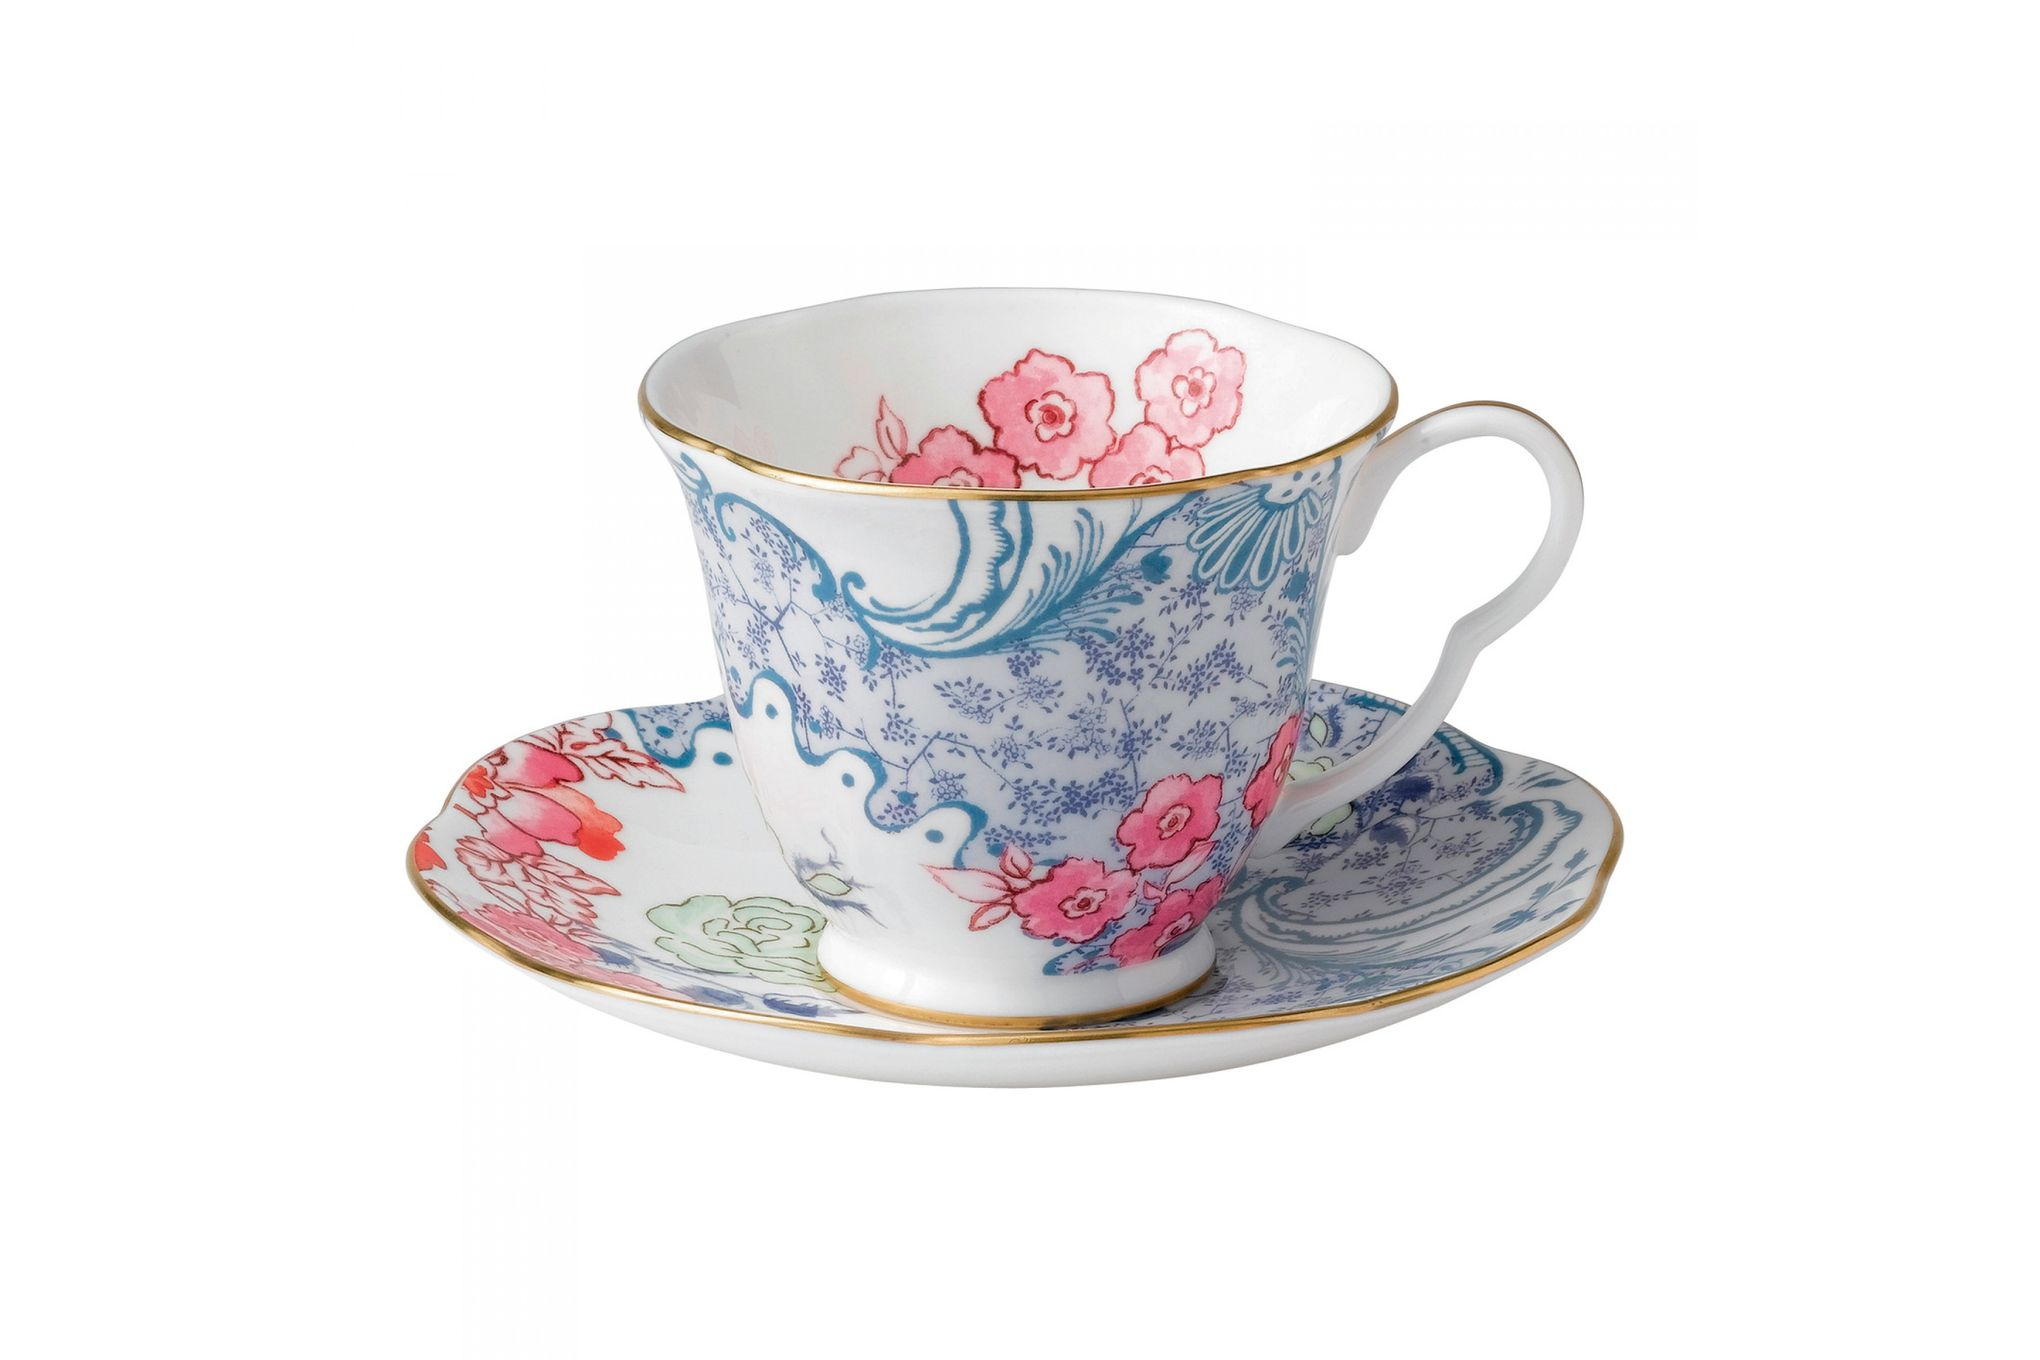 Wedgwood Butterfly Bloom Teacup & Saucer Blue and Pink thumb 1